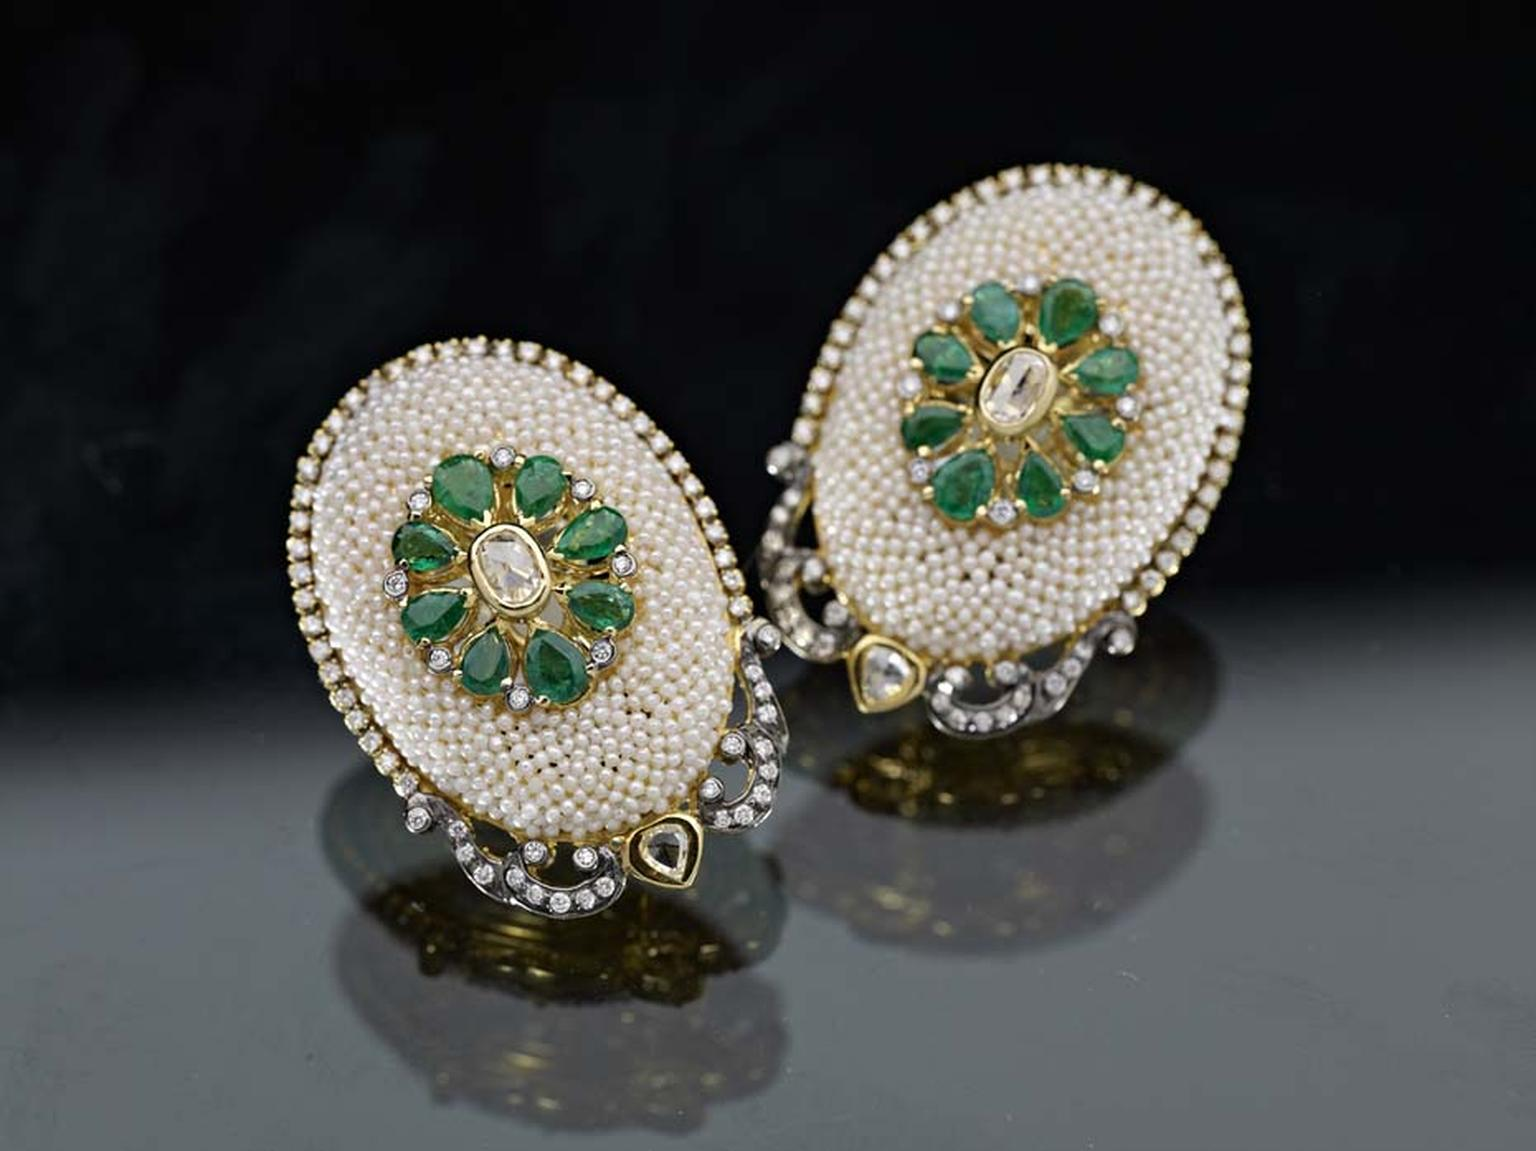 Moksh Taantvi collection earrings set with Zambian emeralds, rose and brilliant-cut diamonds and fine Japanese keshi pearls.